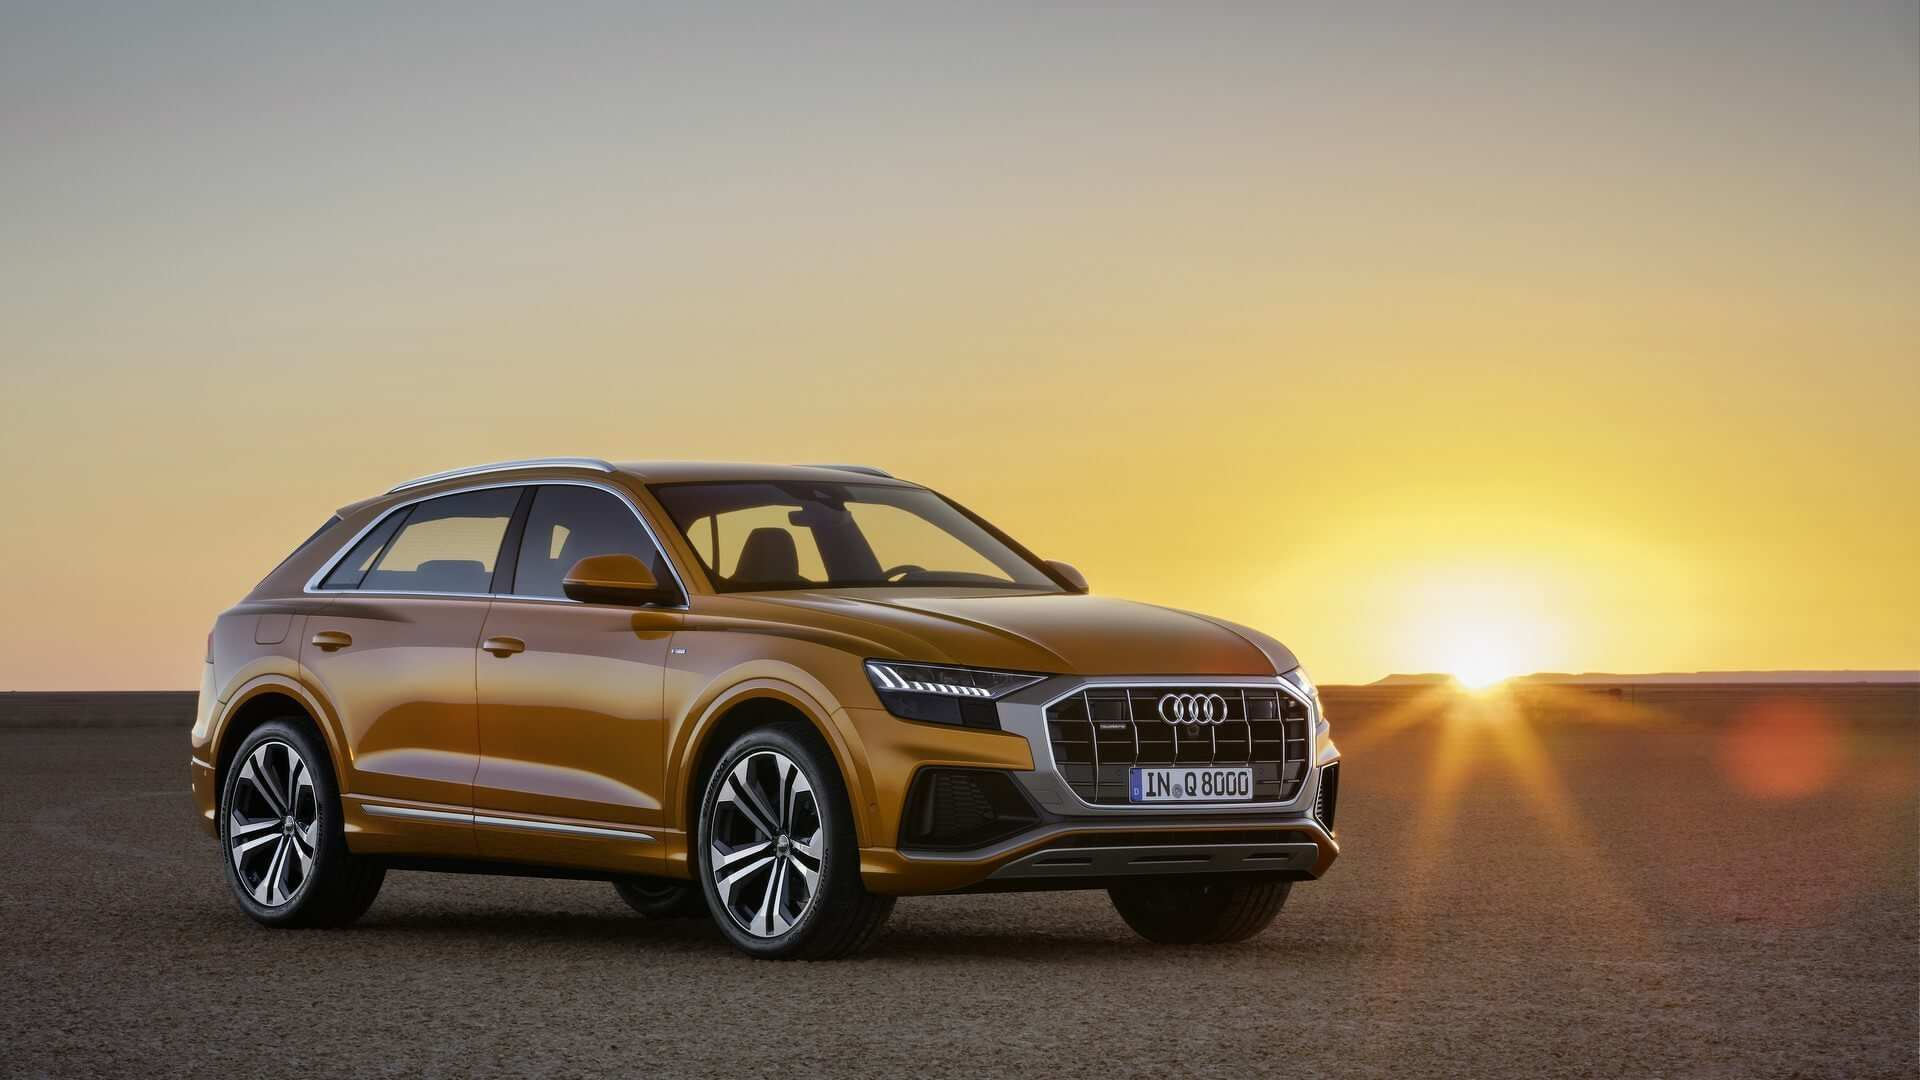 86 Concept of 2019 Audi Q8 Price Review Pictures by 2019 Audi Q8 Price Review